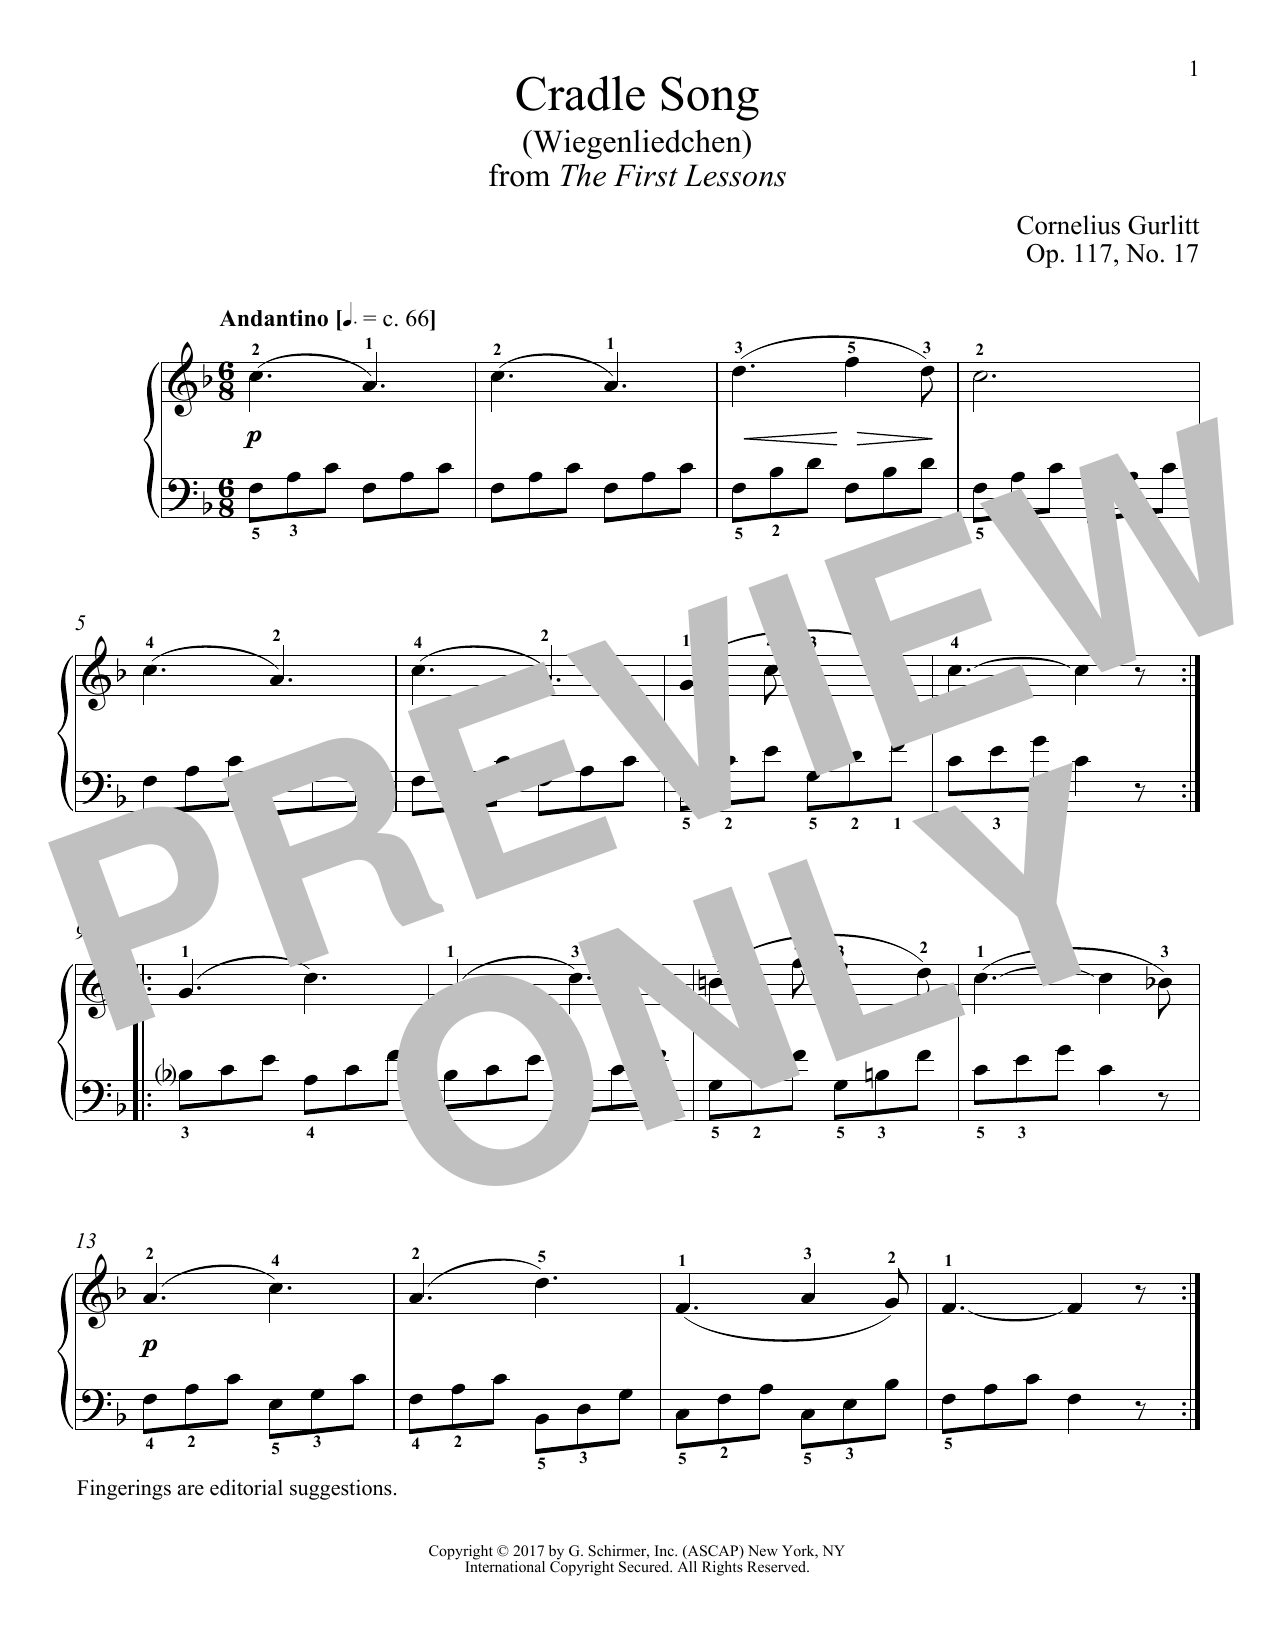 Download Cornelius Gurlitt 'Cradle Song (Wiegenliedchen), Op. 117, No. 17' Digital Sheet Music Notes & Chords and start playing in minutes